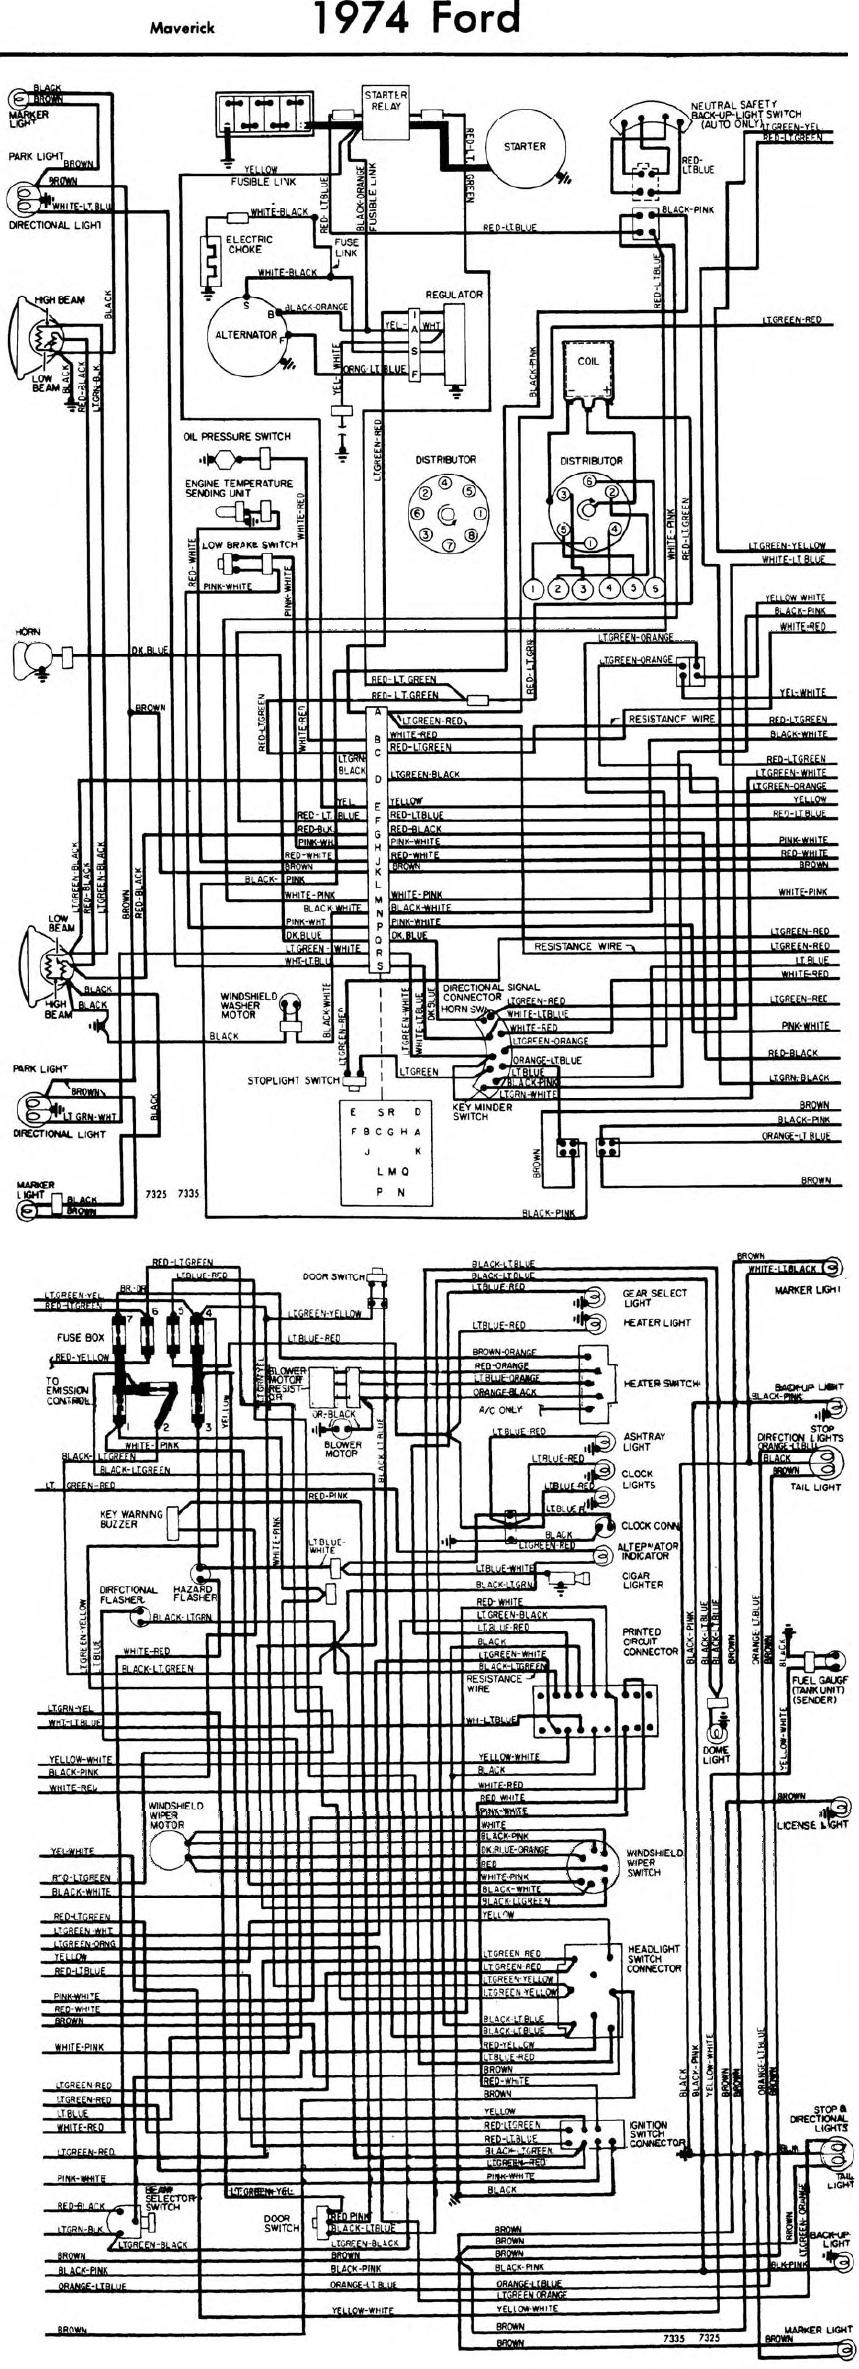 small resolution of ford maverick starter wiring wiring diagram third level 1979 ford 302 distributor wiring diagram 1977 ford maverick wiring diagram